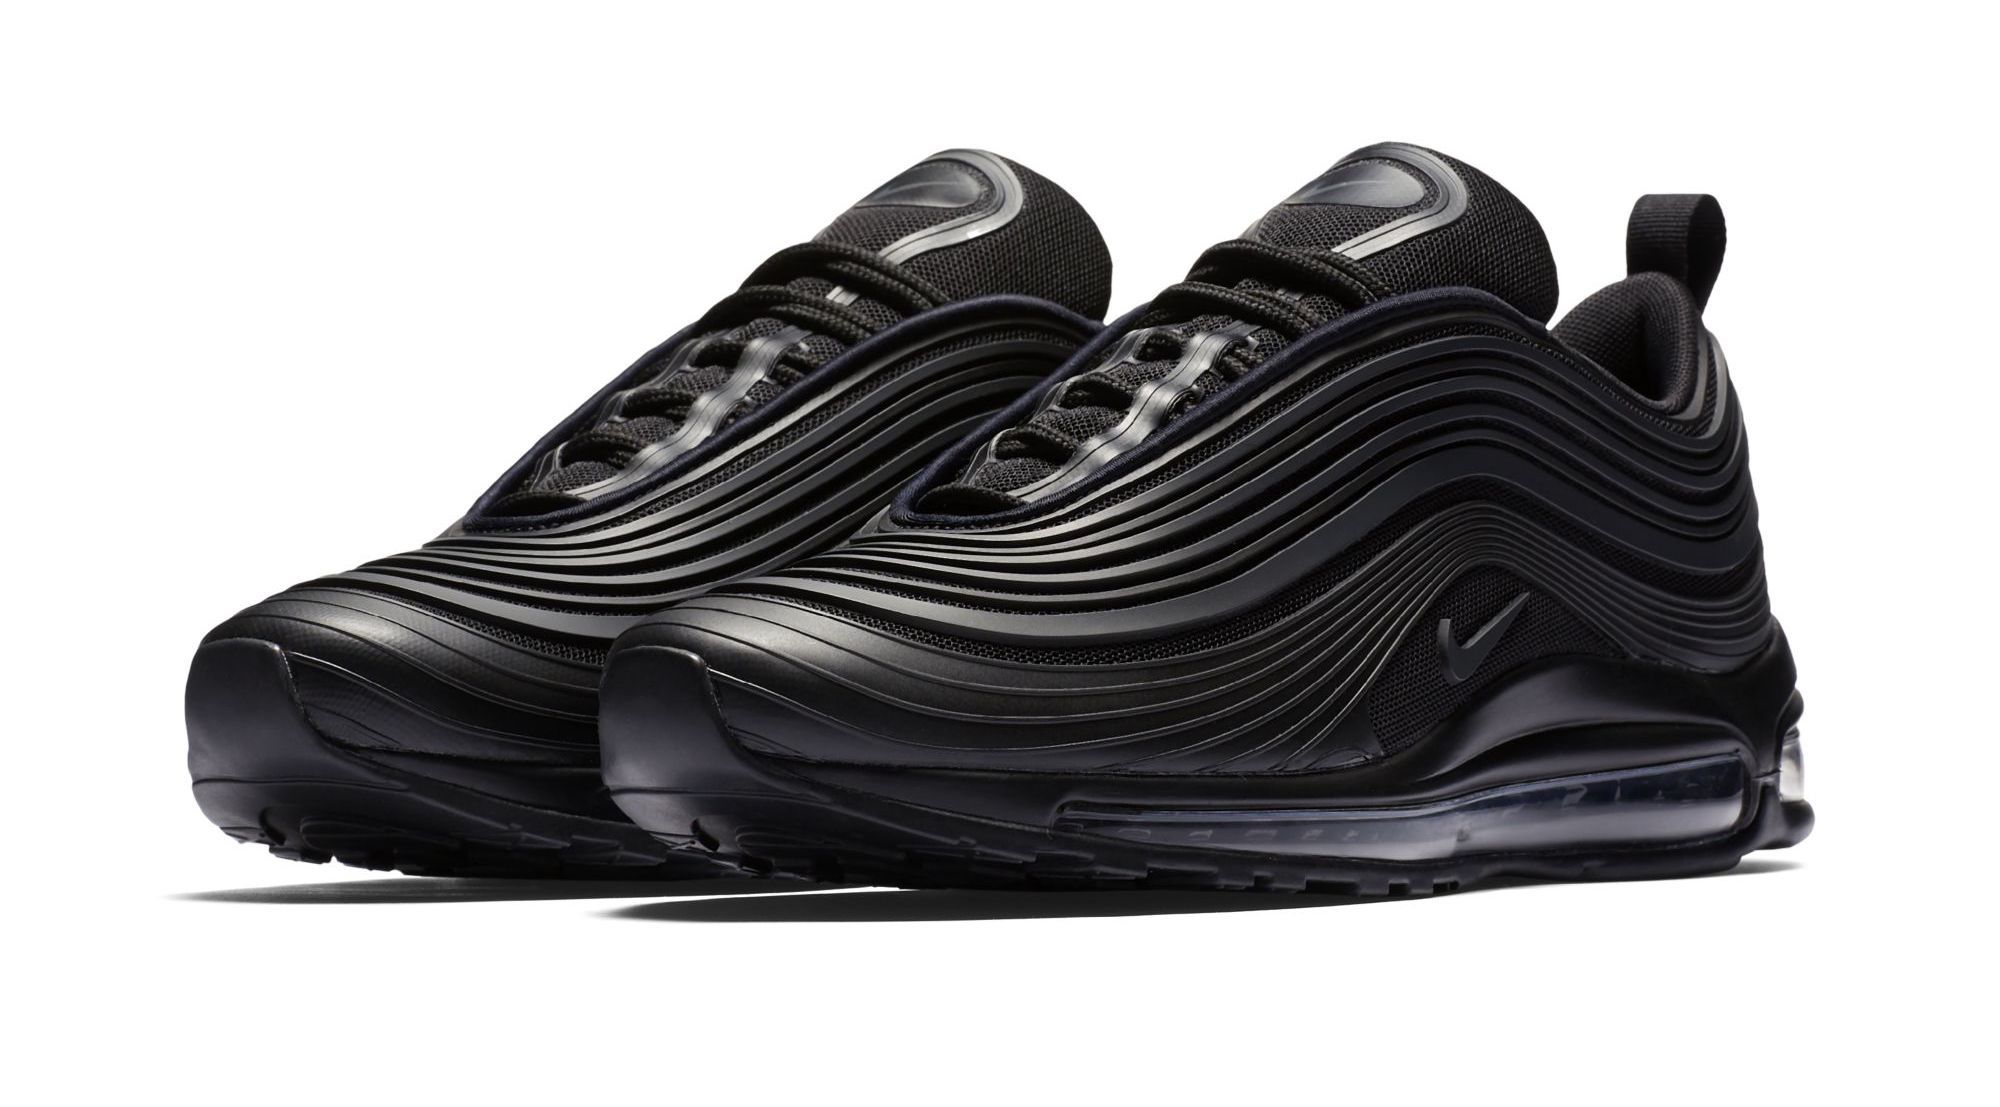 e1869e27d1 Nike Air Max 97 Ultra 17 Premium Triple Black Coming Soon | Shoe ...